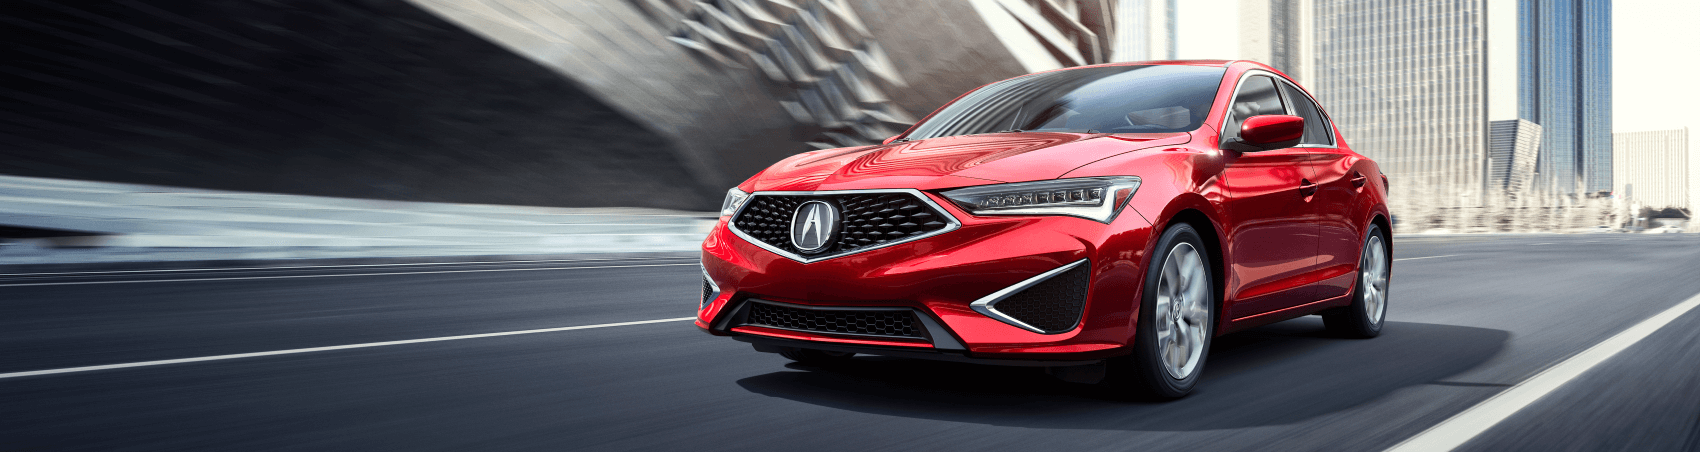 2021 Acura ILX Red City Highway Sussman Acura